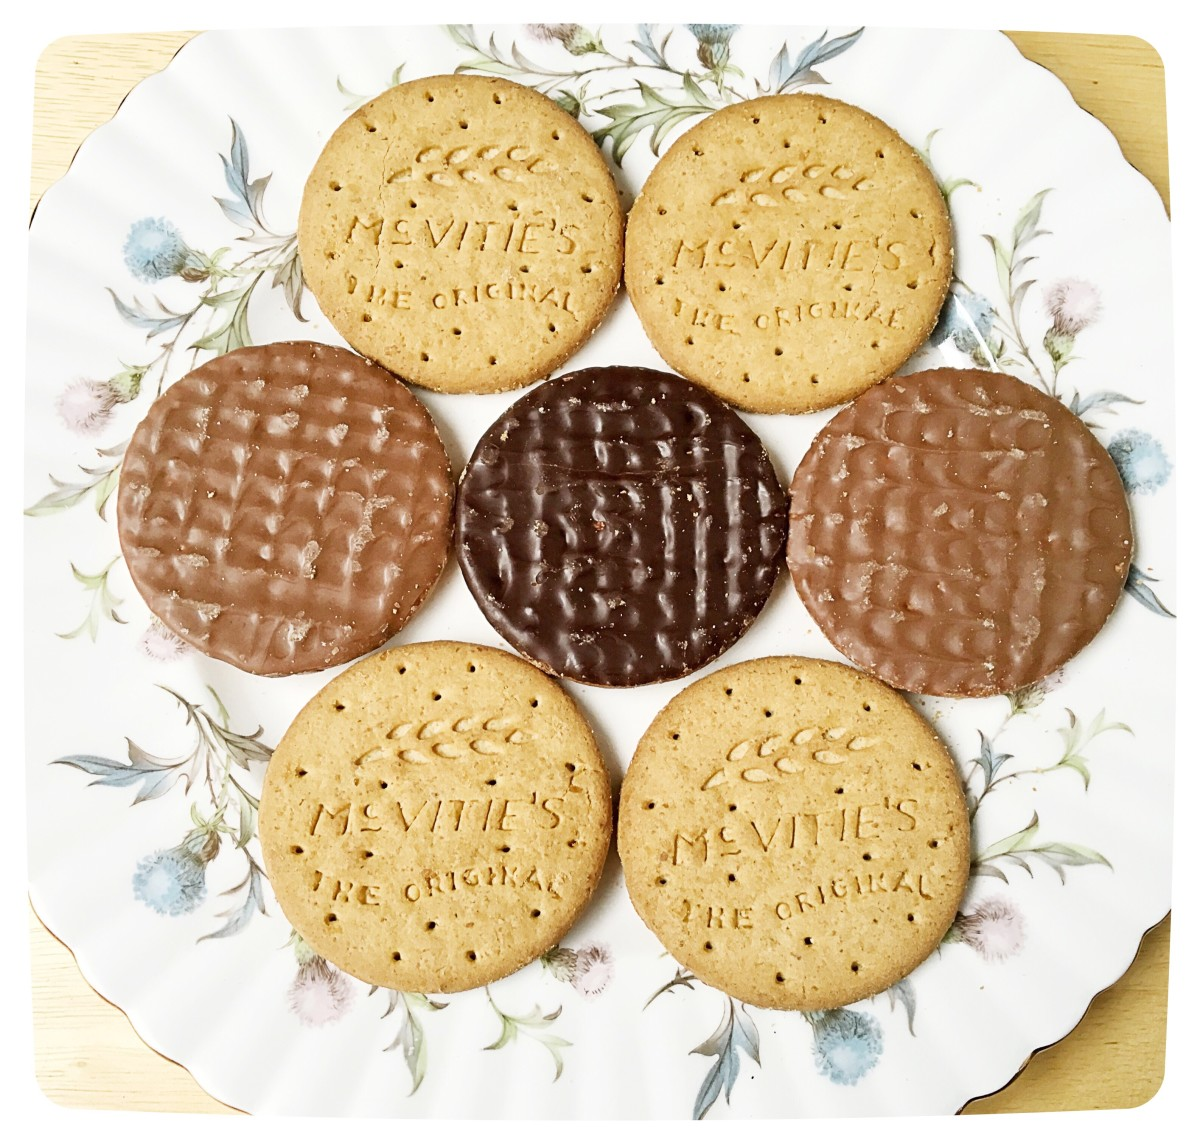 McVitie\'s History, Digestive Biscuits, and Jaffa Cakes | Delishably